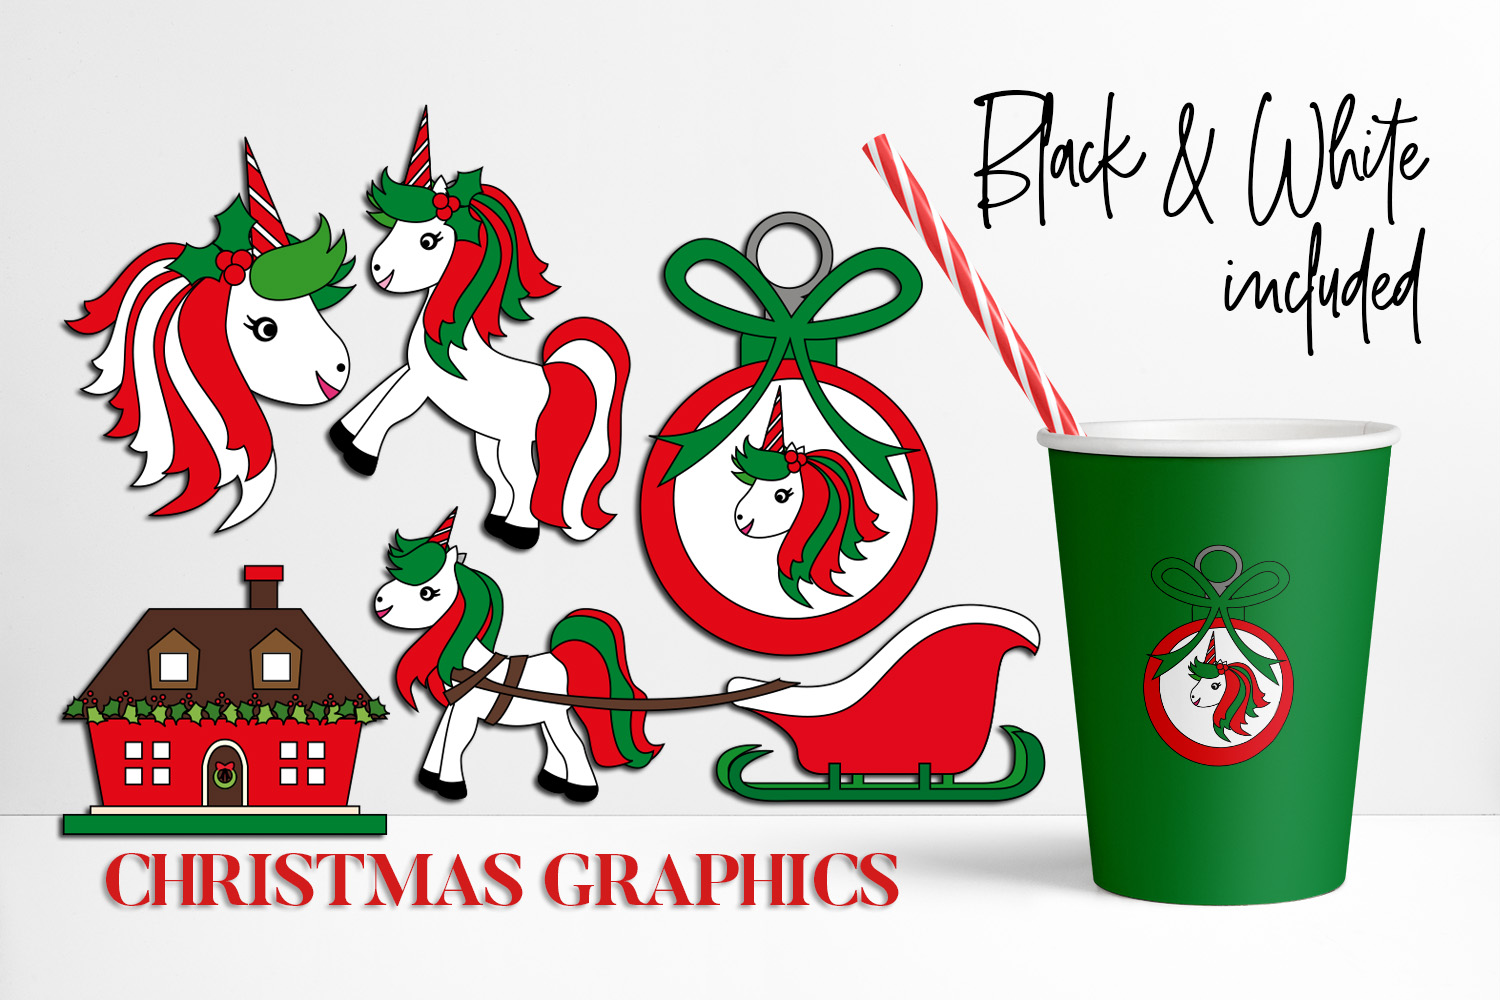 Download Free Christmas Unicorns Graphic By Darrakadisha Creative Fabrica for Cricut Explore, Silhouette and other cutting machines.